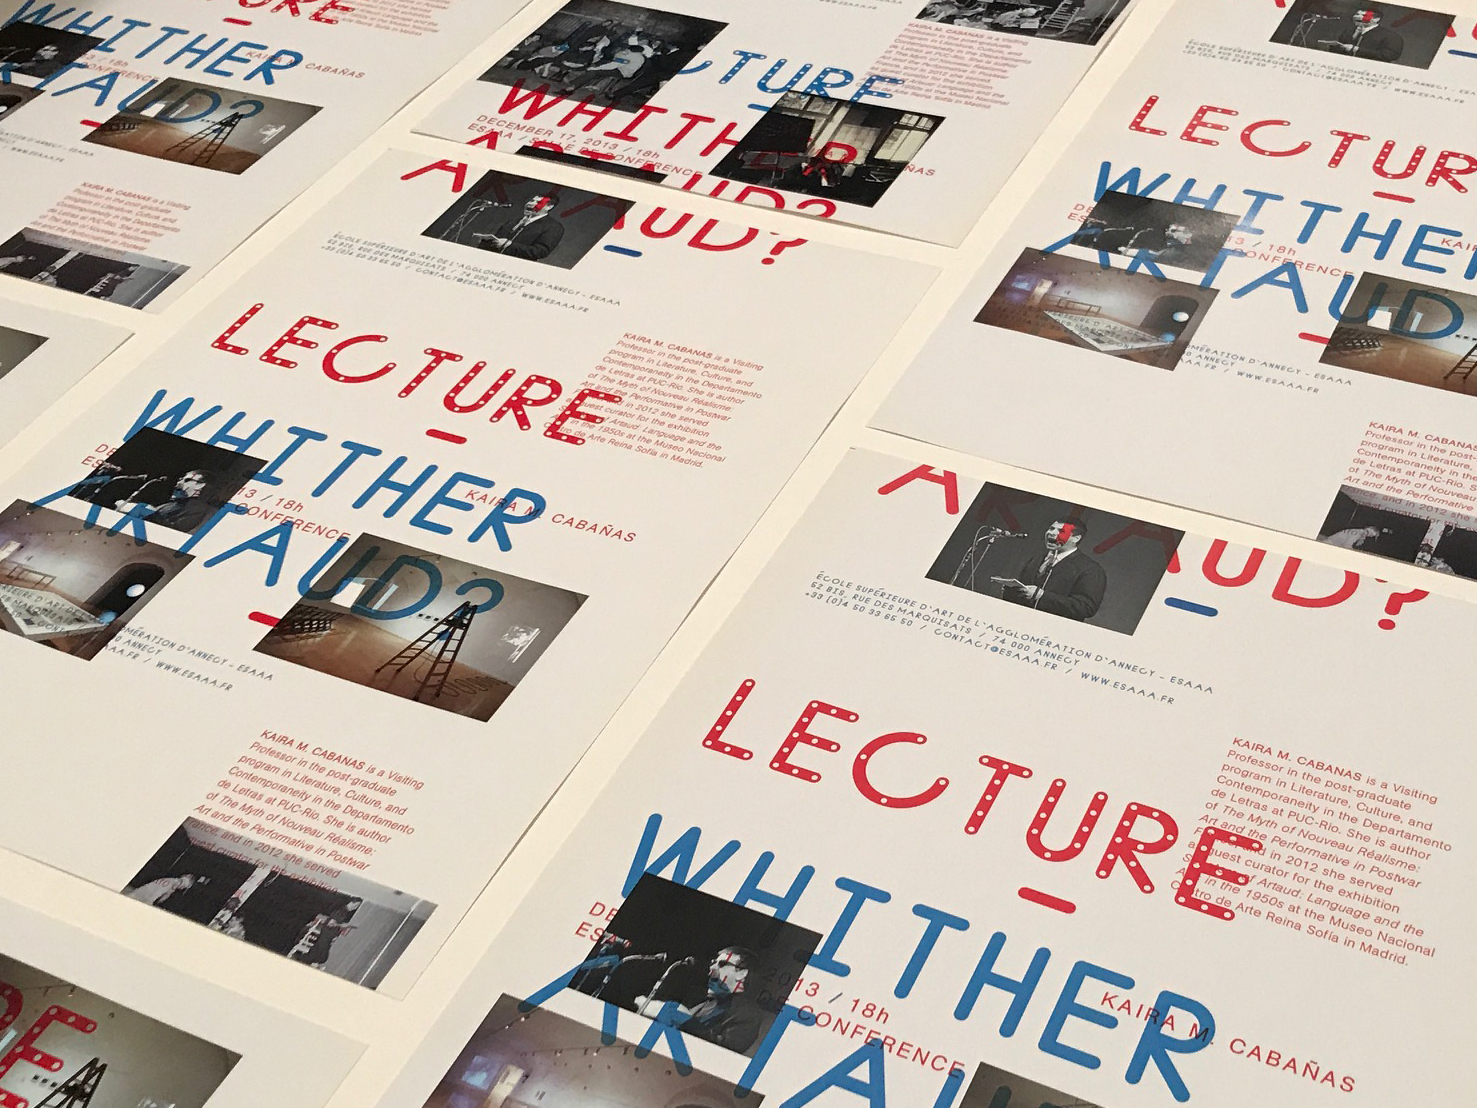 Whither Artaud Poster